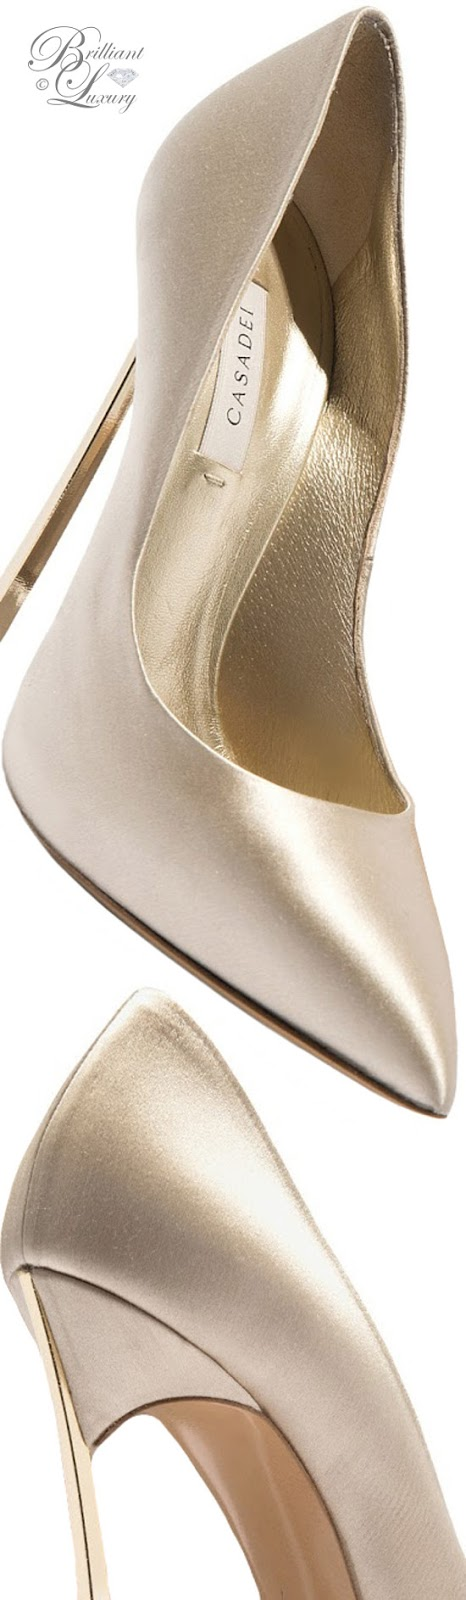 Brilliant Luxury ♦ Fall in ~ Casadei Blade high heels in gold